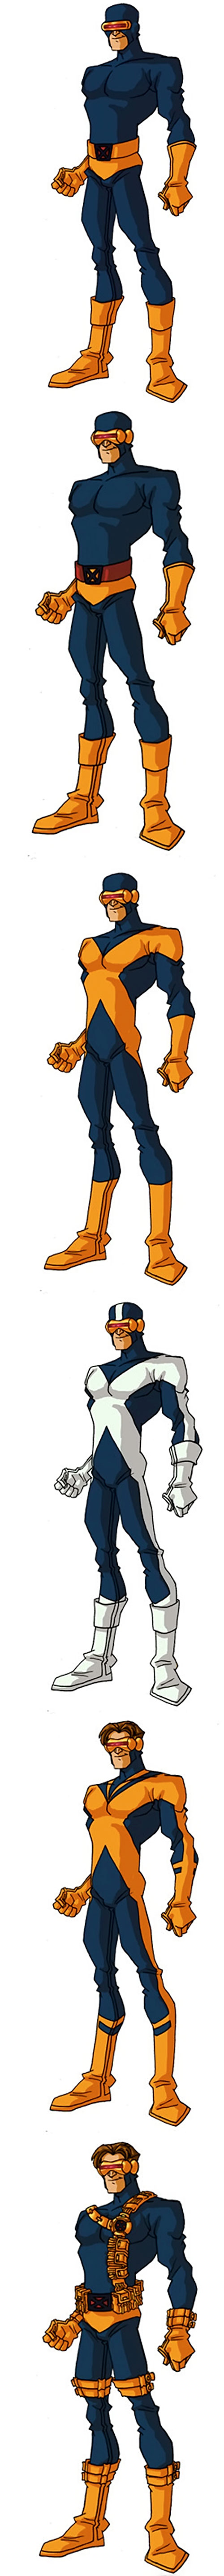 Classic costumes of Cyclops of the X-Men by RonnieThunderbolts